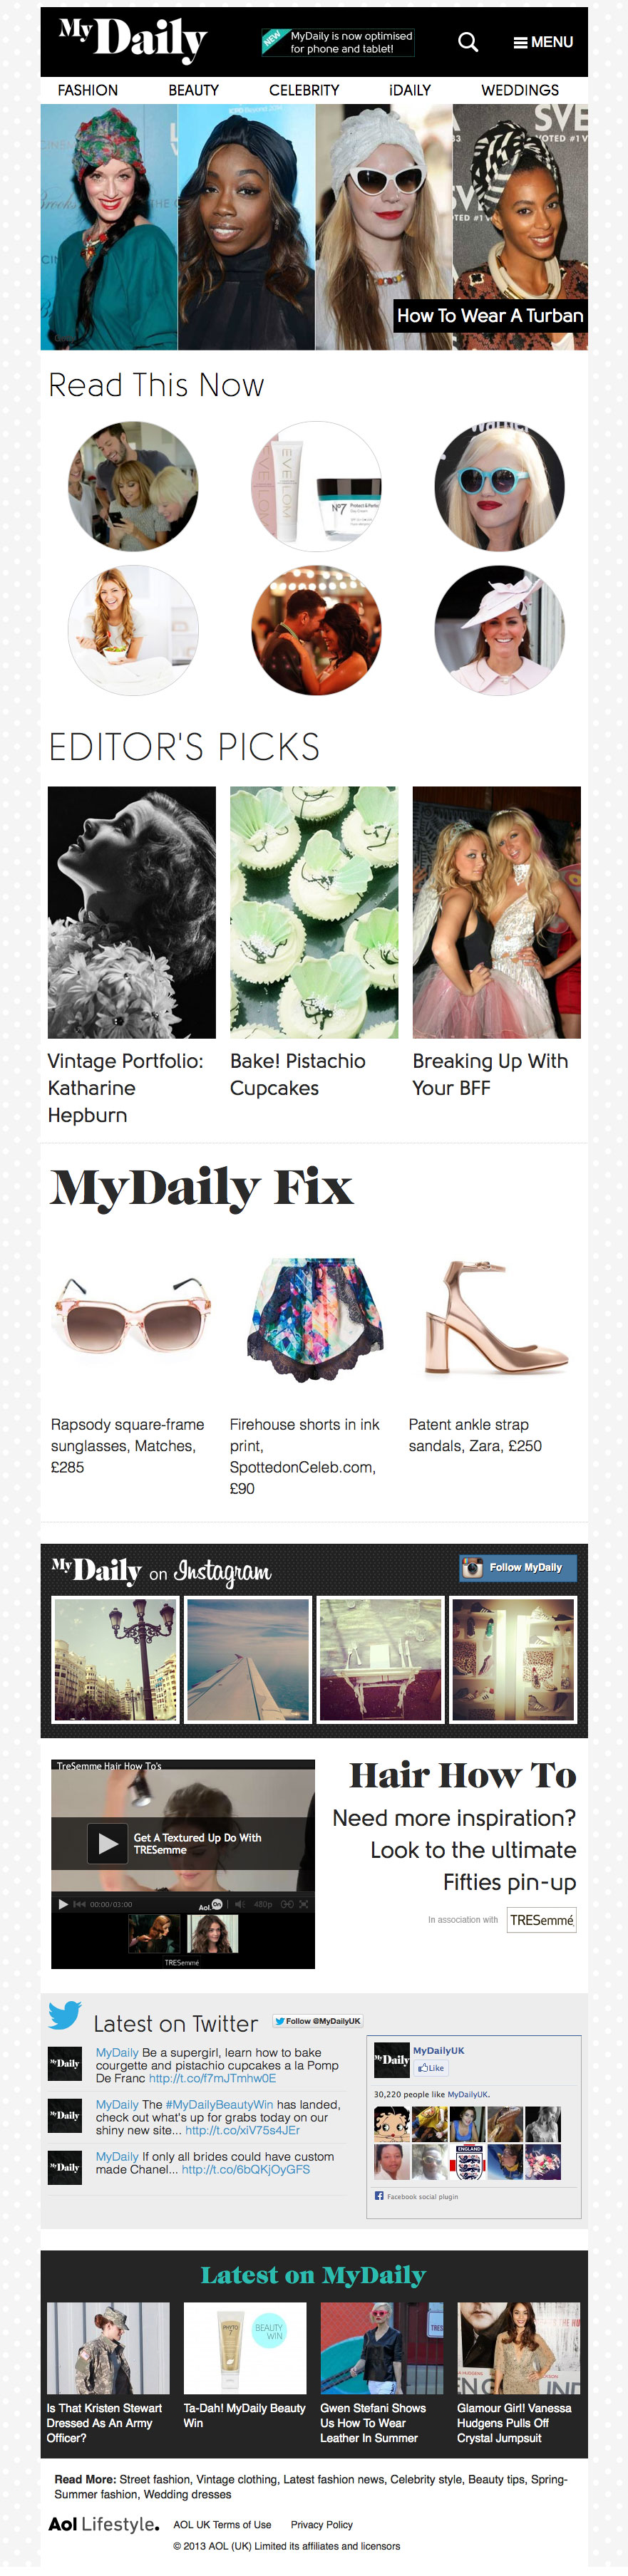 The MyDaily site for tablet devices